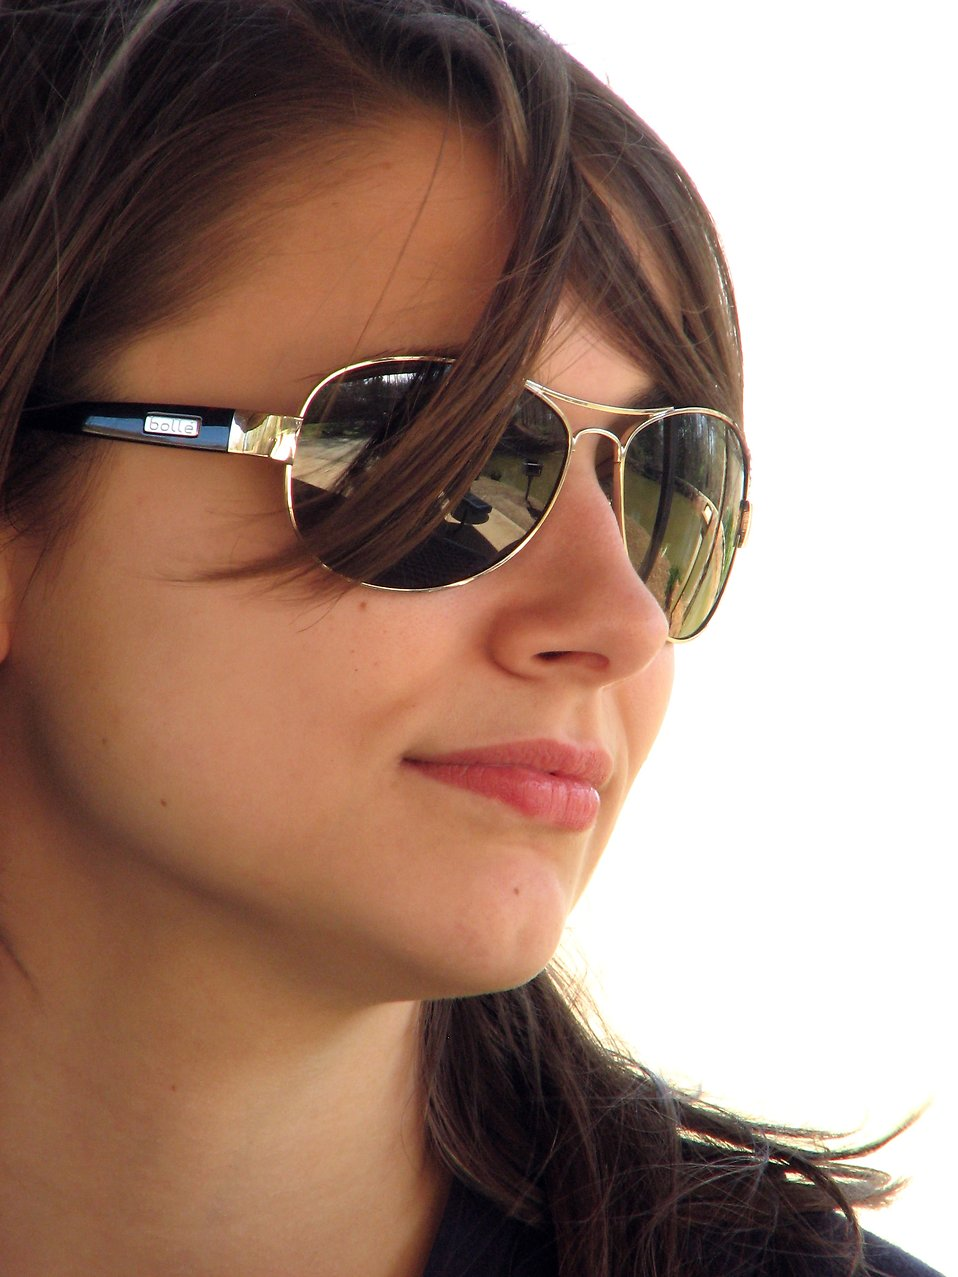 Close-up portrait of a beautiful girl wearing sunglasses.